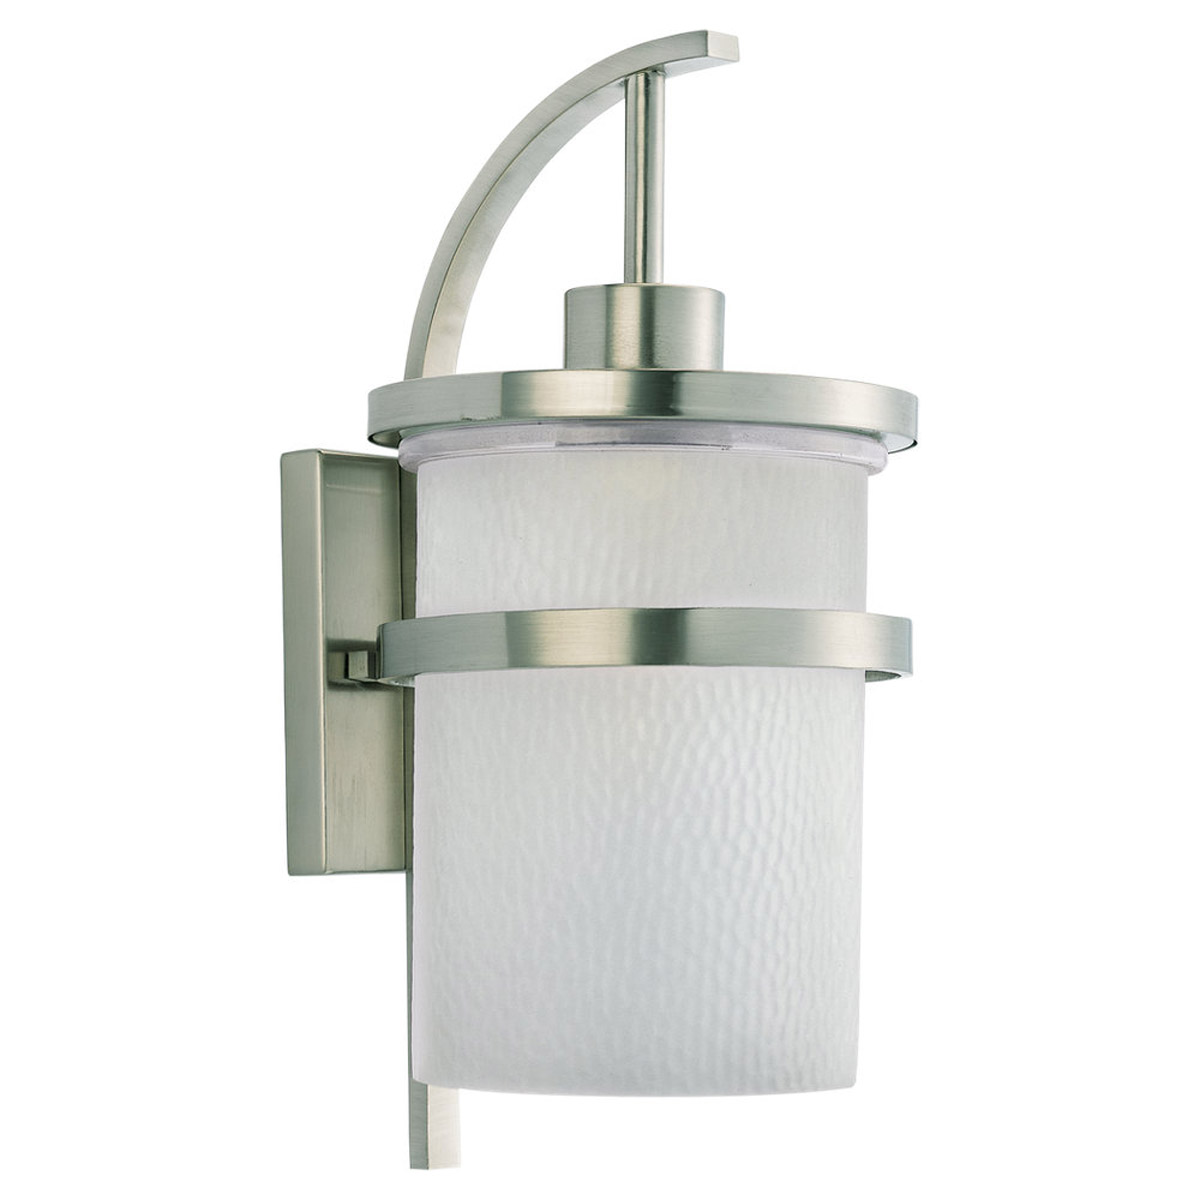 Sea Gull Lighting Eternity 1 Light Outdoor Wall Lantern in Brushed Nickel 88119-962